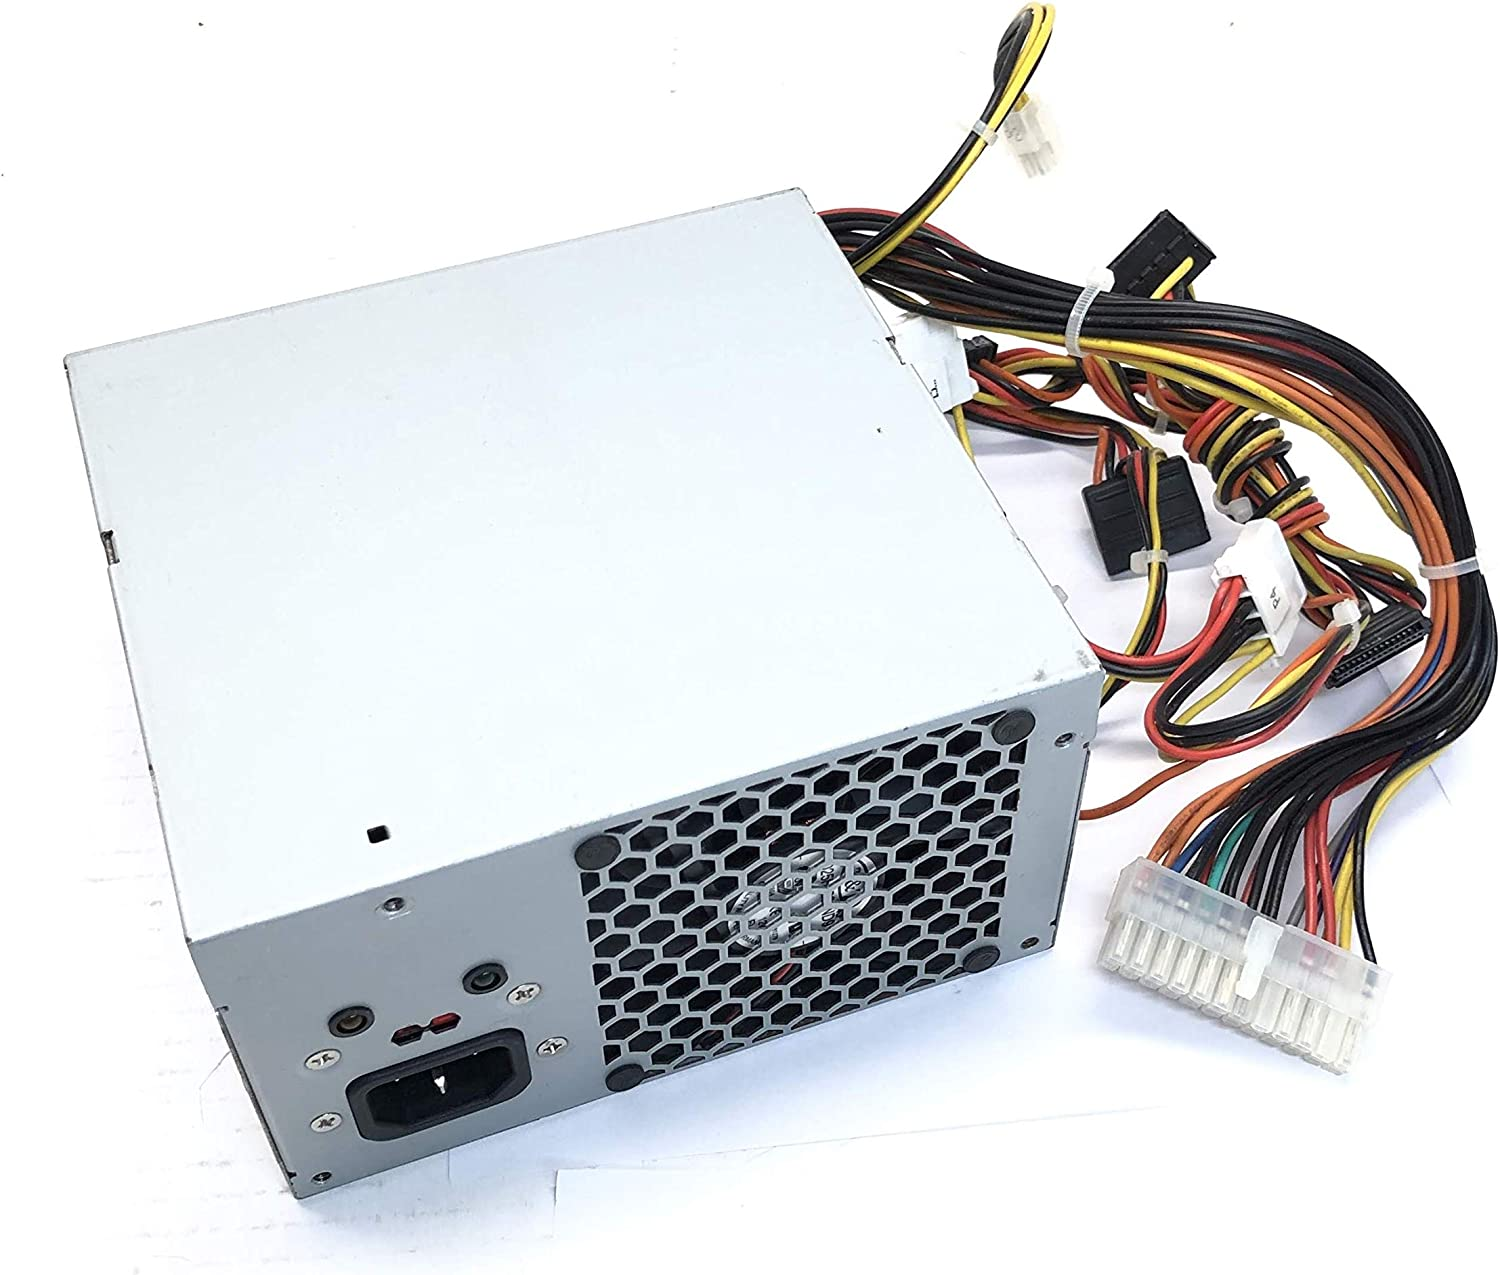 IBM 310W POWER SUPPLY THINKCENTRE A51 24R2595 24R2596 24R2599 LITE-ON Model PS-5311-7M-ROHS DELTA ELECTRONICS Model DPS-310CB A